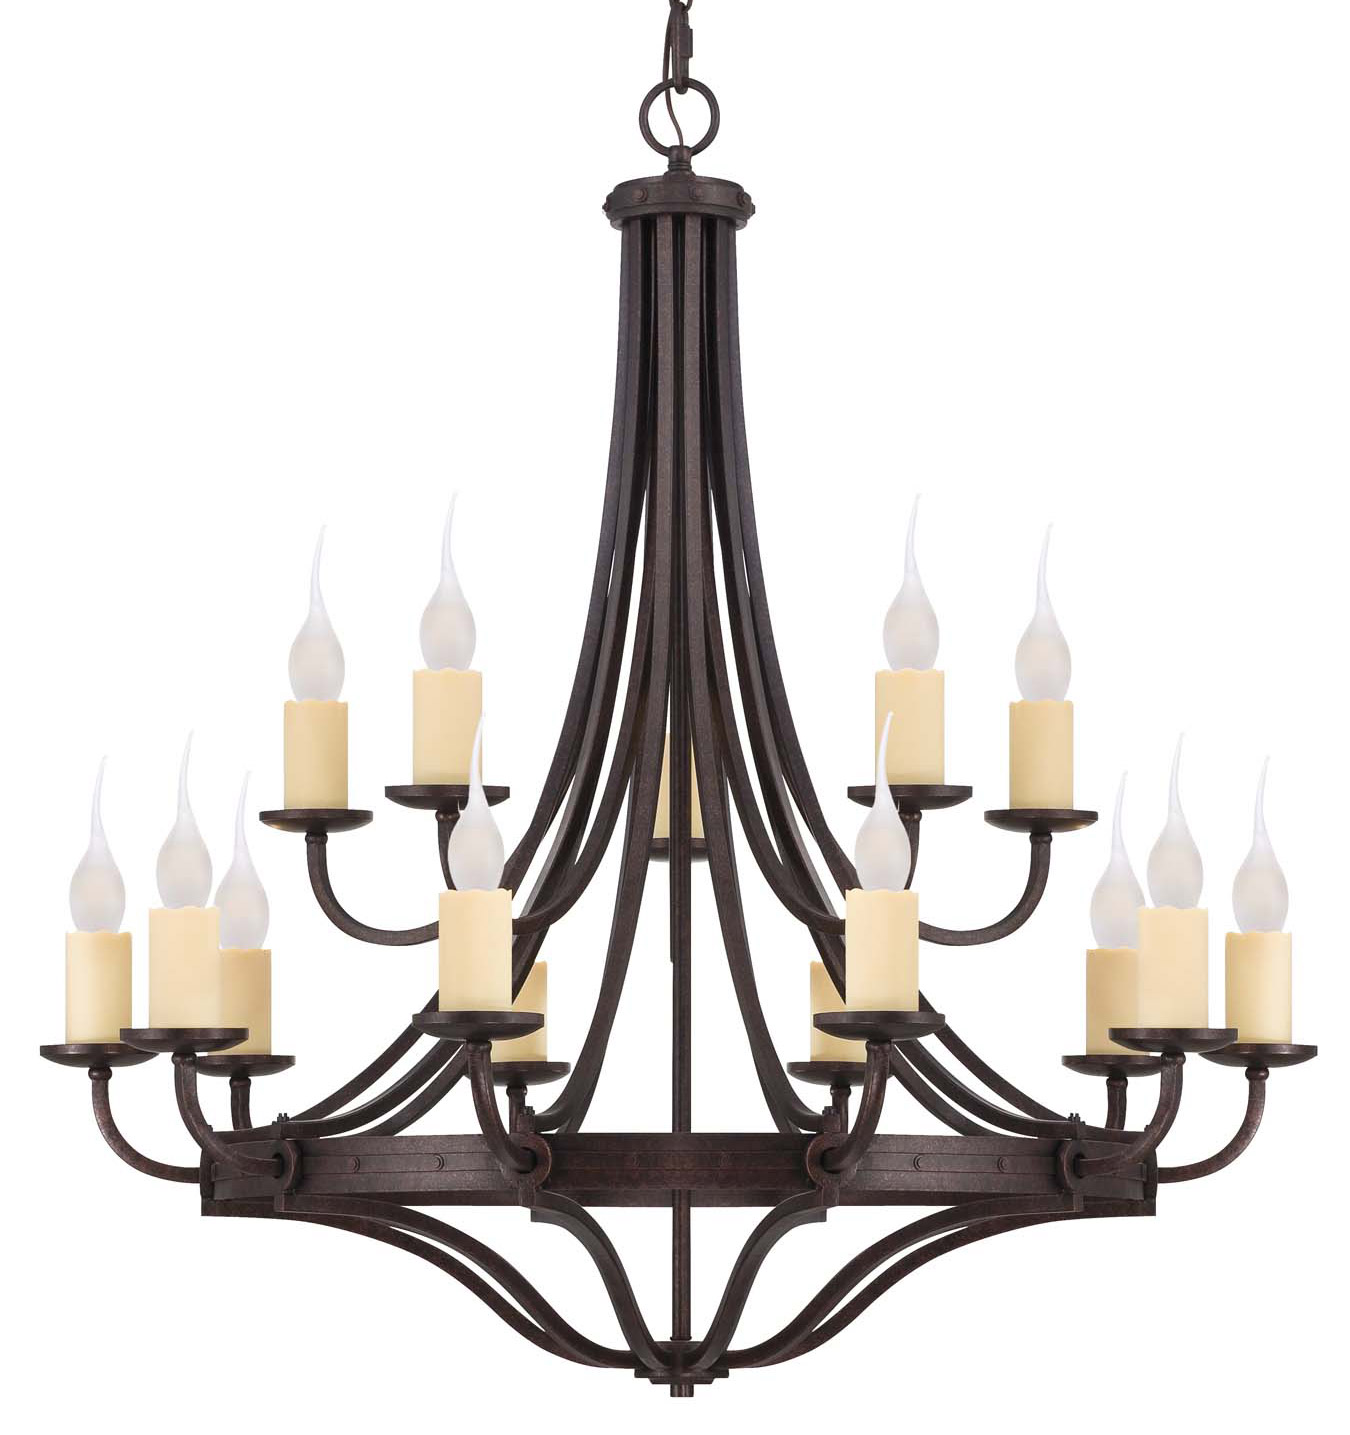 Home Ceiling Lighting Chandeliers Multi Tiered Large Chandelie